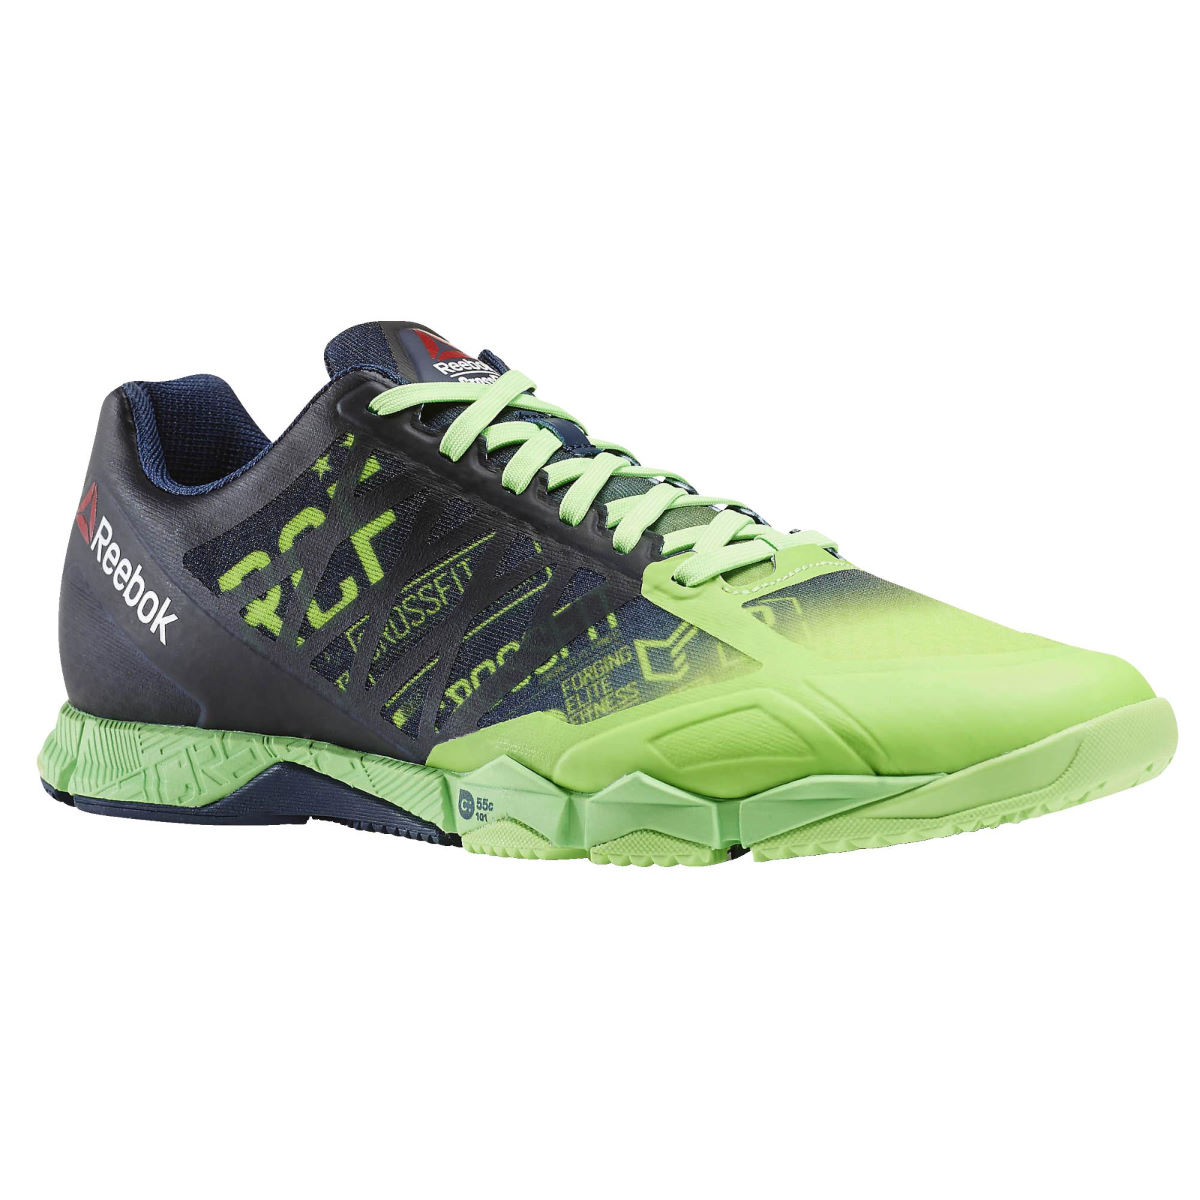 Reebok HIIT TR 1.0 Shoes (SS16) - UK 10.5 Green/Navy